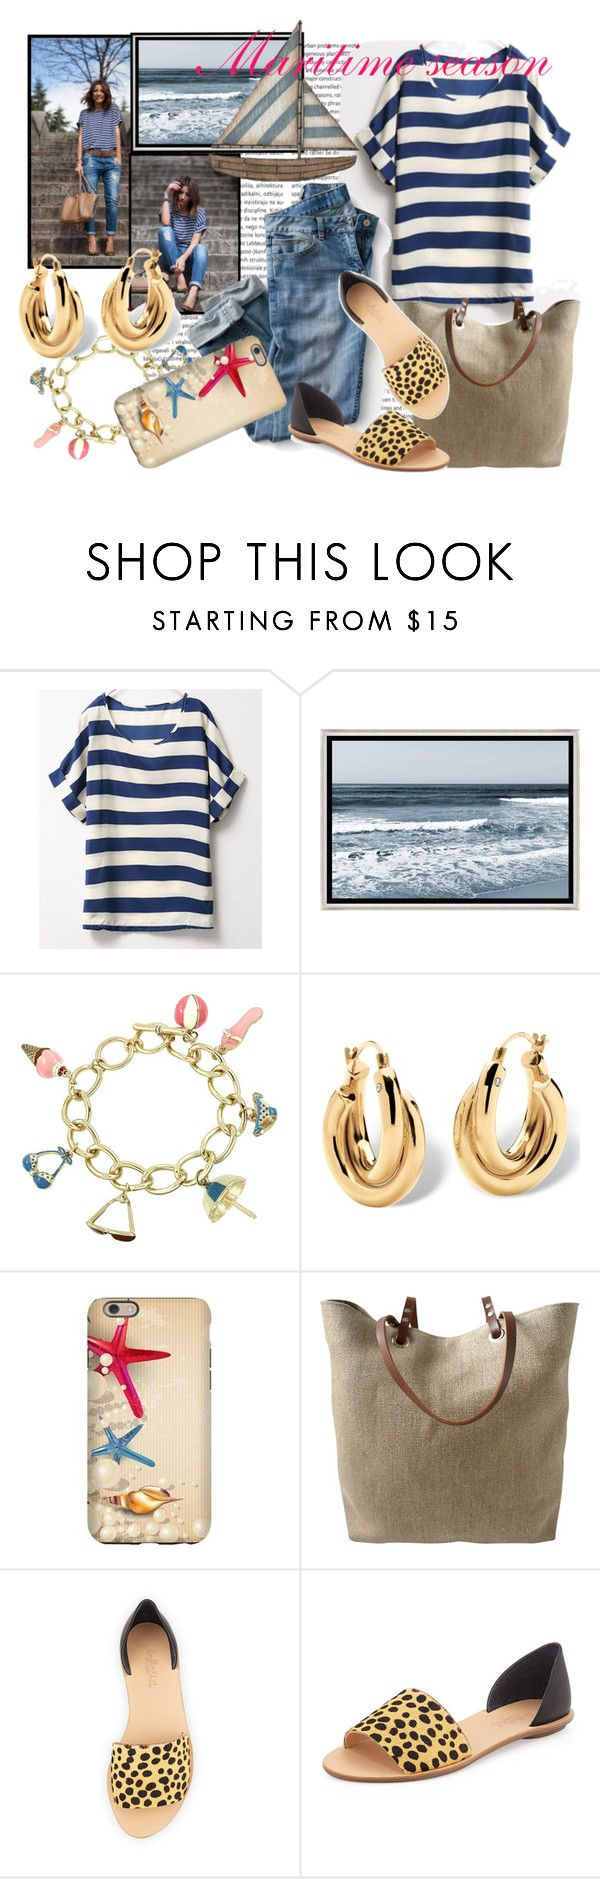 """Maritime season"" by tasha1973 ❤ liked on Polyvore featuring Barclay Butera, Palm Beach Jewelry, Independent Reign and Loeffler Randall"